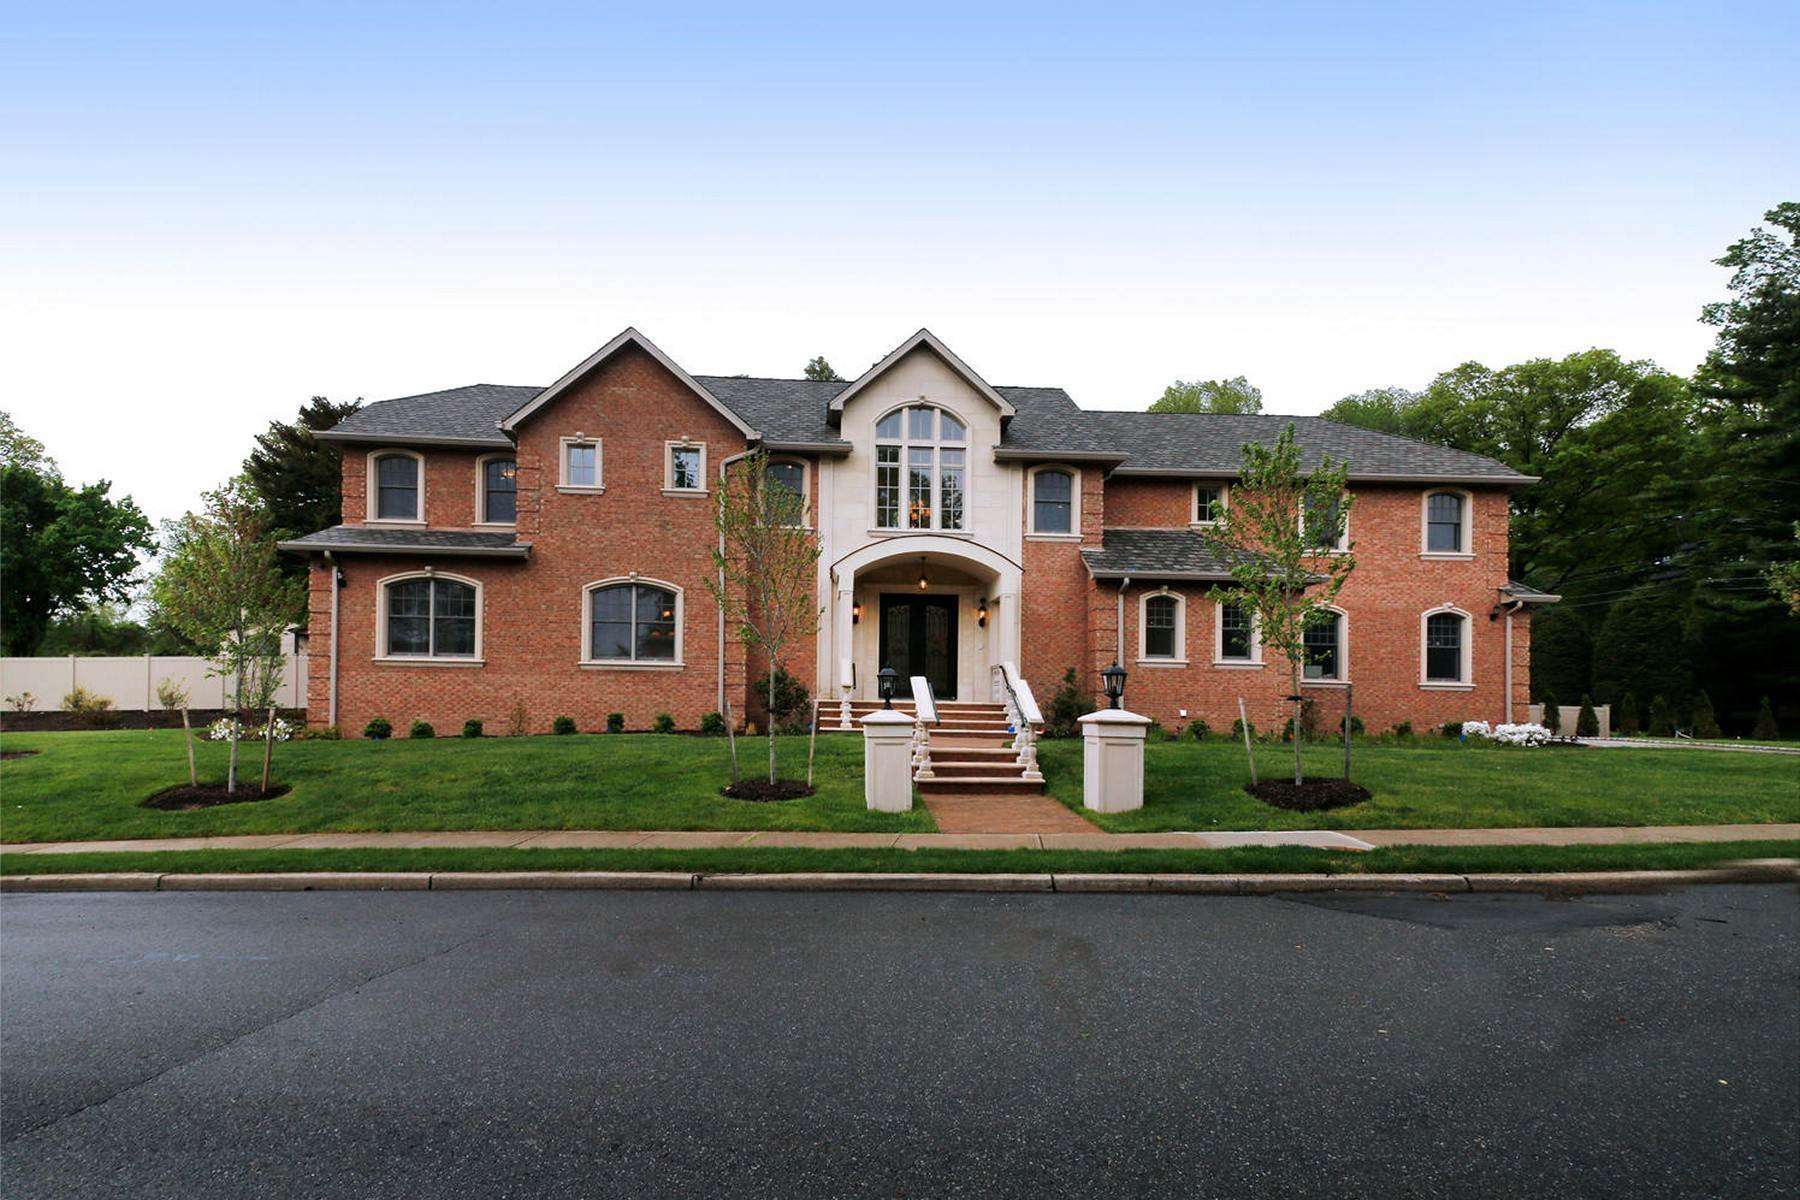 Single Family Homes のために 売買 アット Beautiful Colonial 100 Johnson Ct, Closter, ニュージャージー 07624 アメリカ